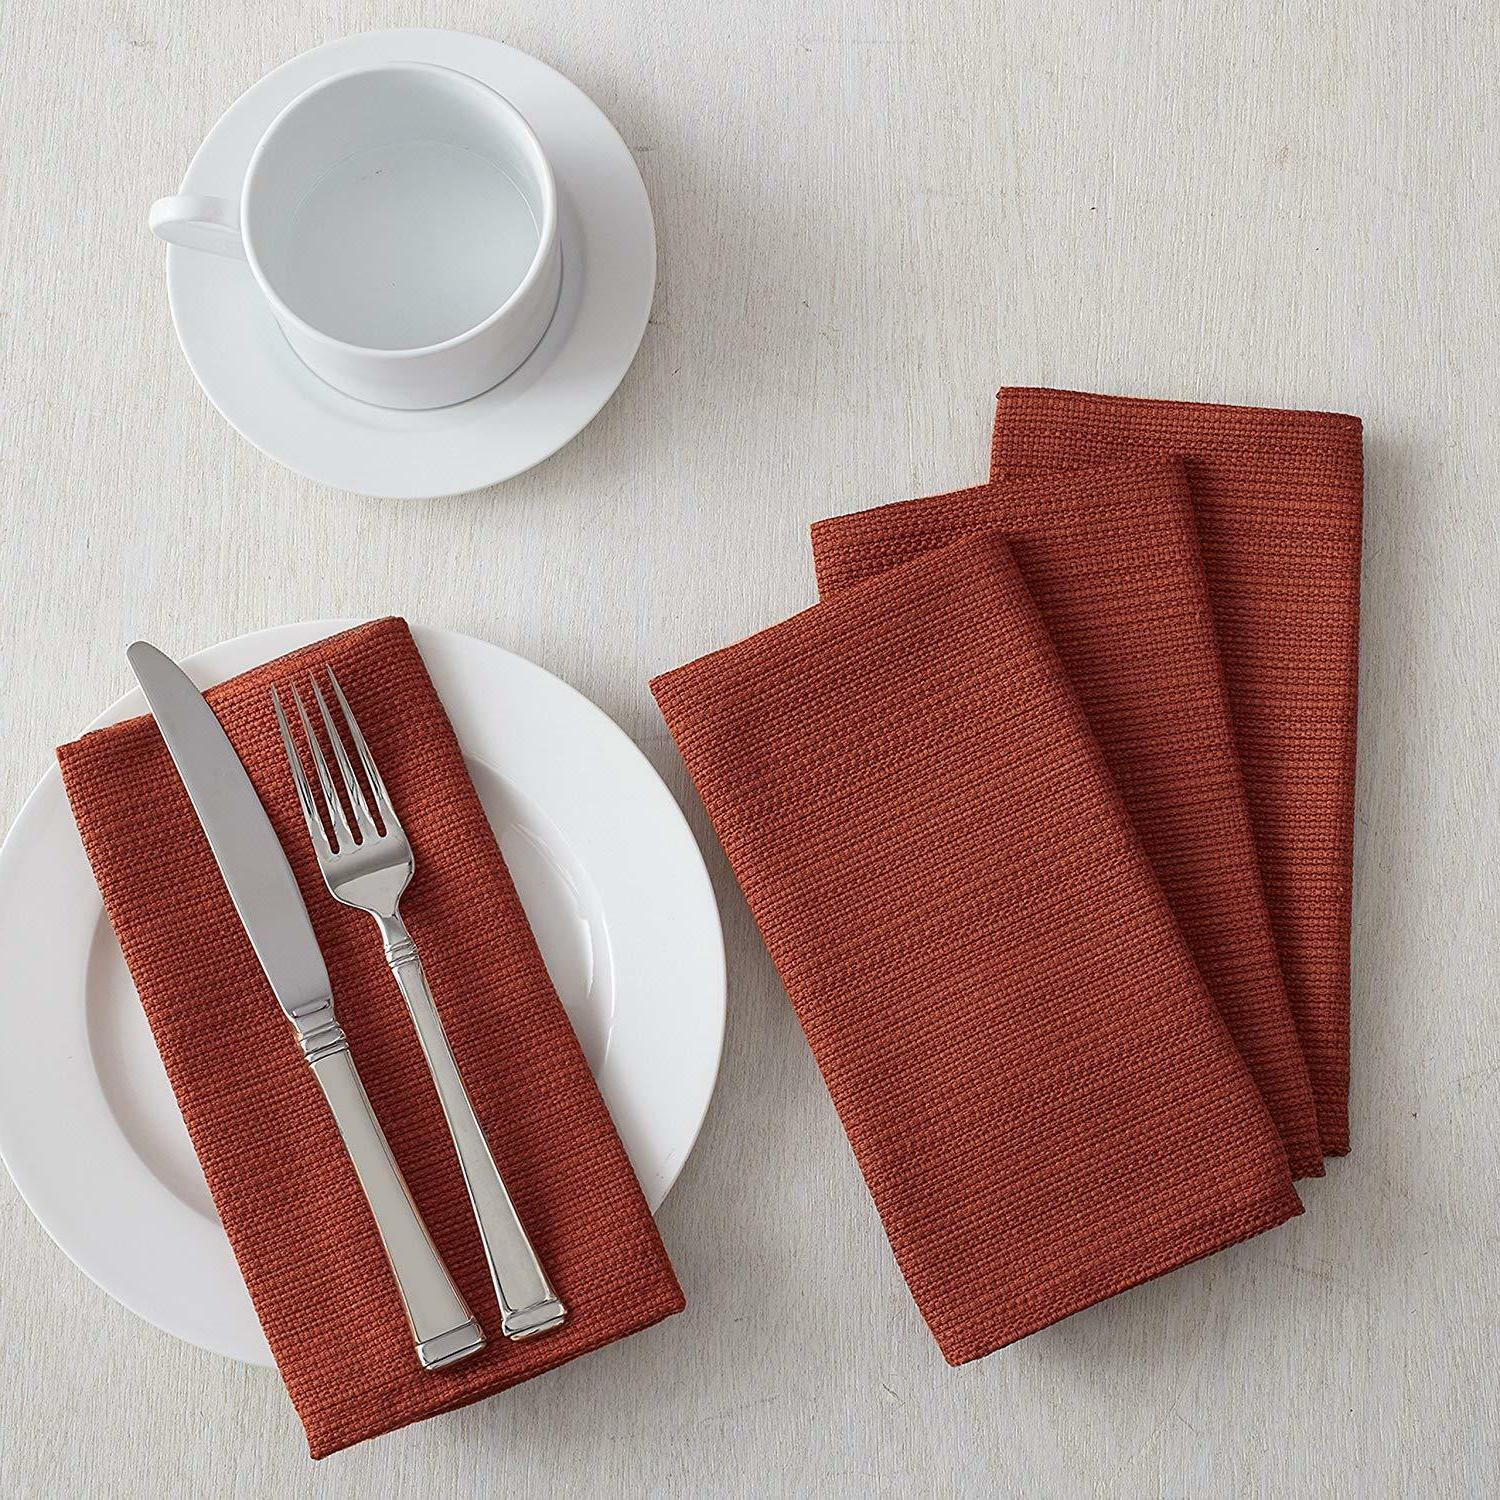 Benson Mills Textured Tablecloth